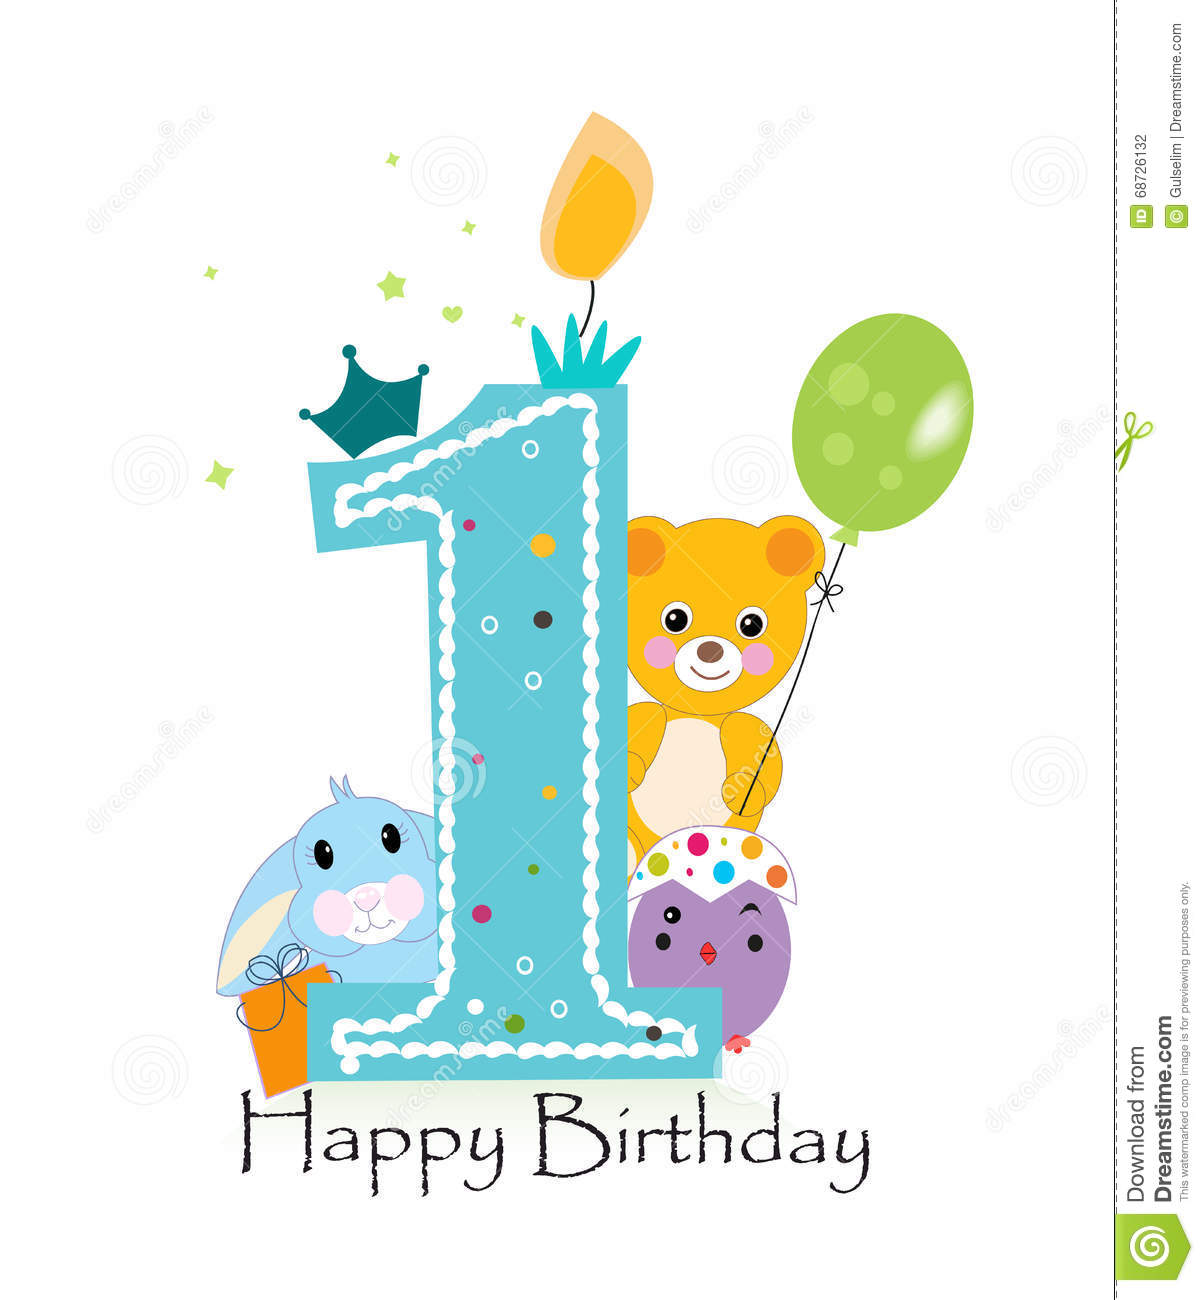 first birthday background images ; first-birthday-greeting-card-teddy-bear-bunny-chick-vector-background-68726132